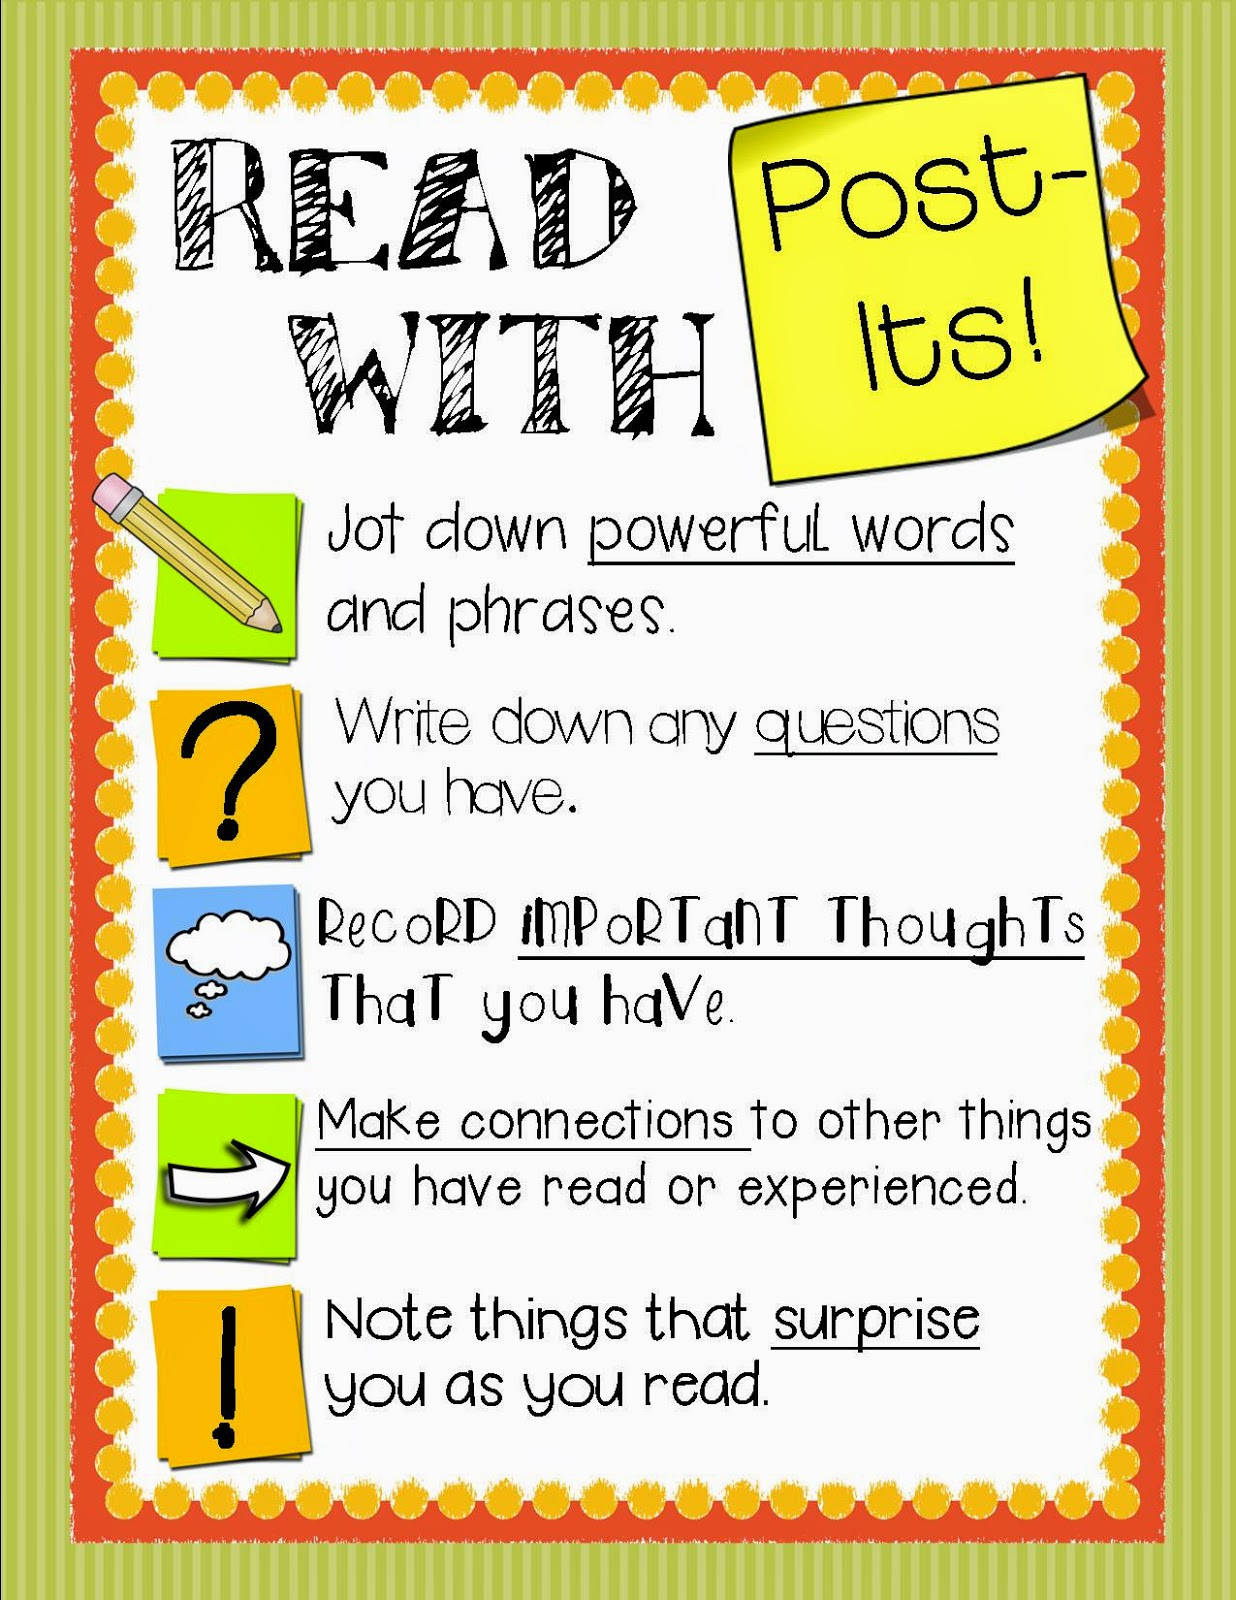 https://www.teacherspayteachers.com/Product/Reading-With-Post-Its-A-useful-tool-for-Independent-Reading-FREEBIE-1704375